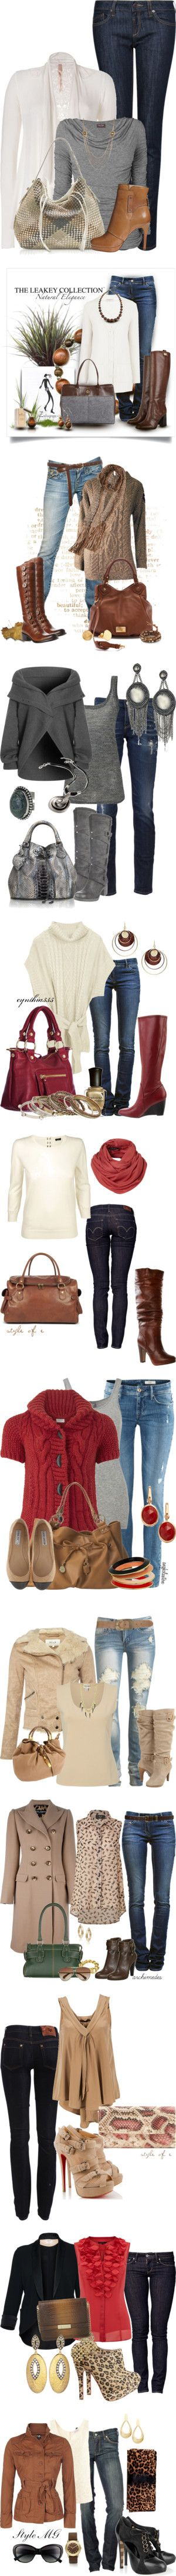 ❤ fall outfits